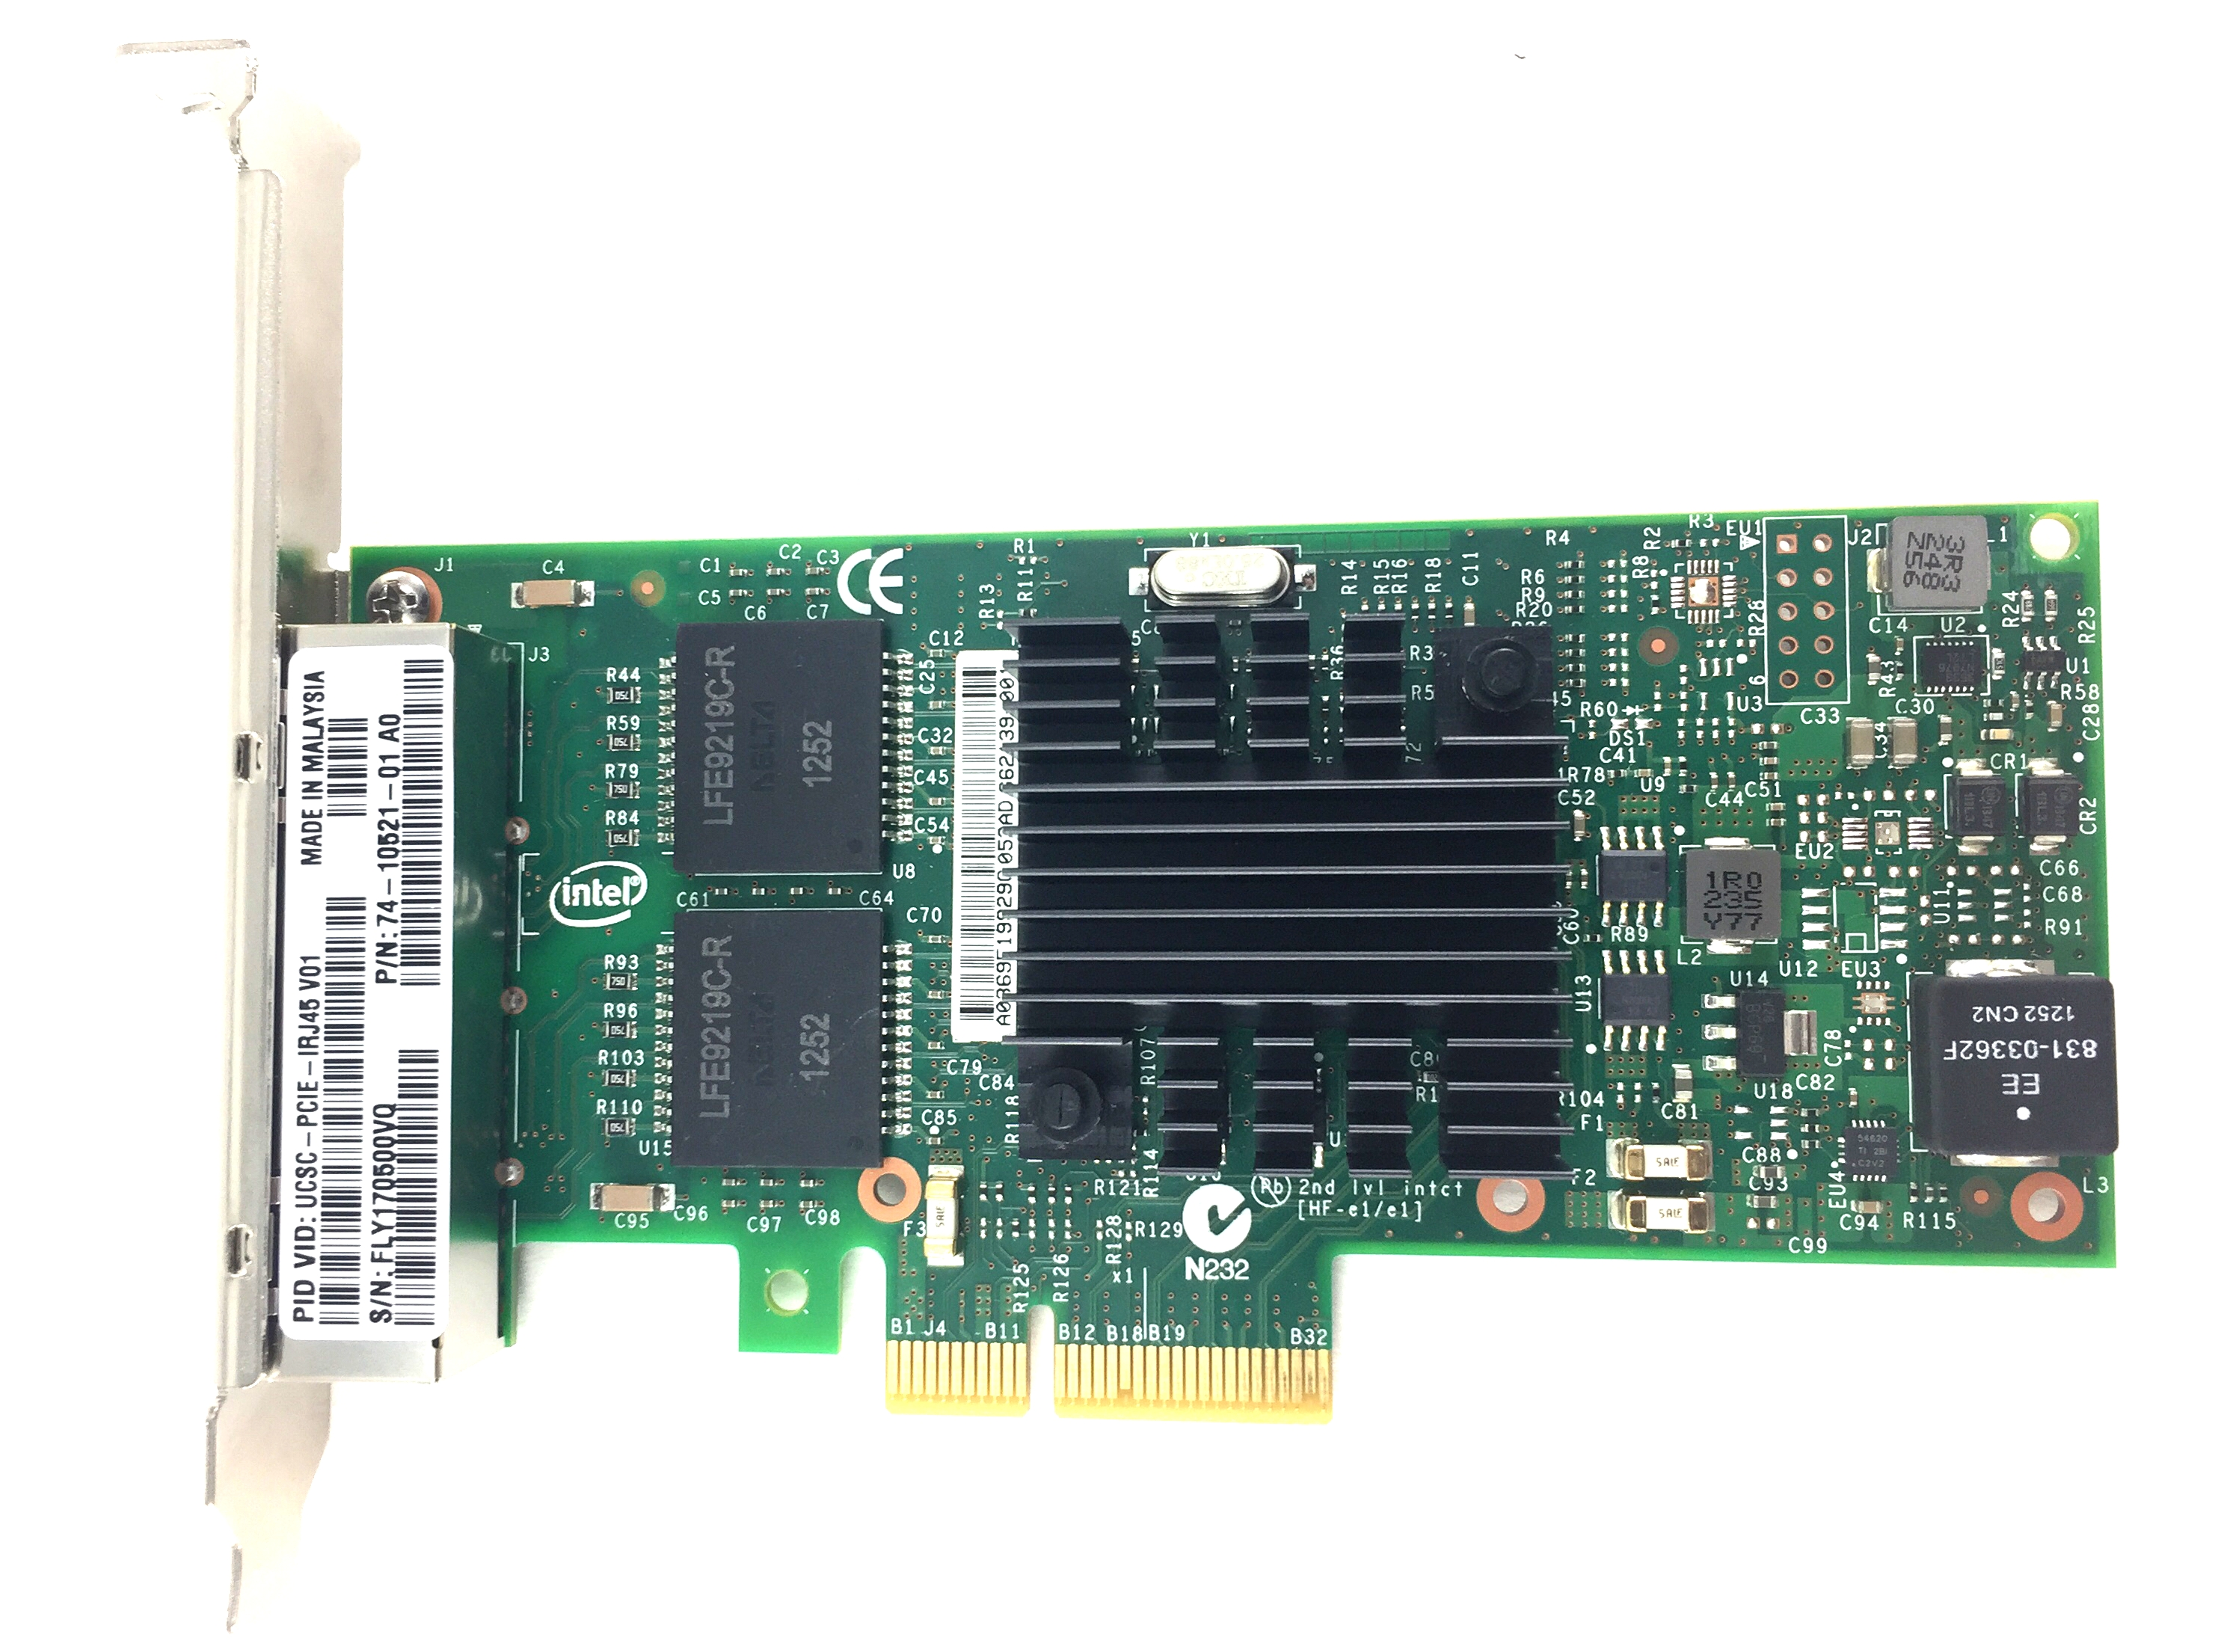 CISCO GIGABIT QUAD 4 PORT PCI-E NETWORK ADAPTER (74-10521-01)